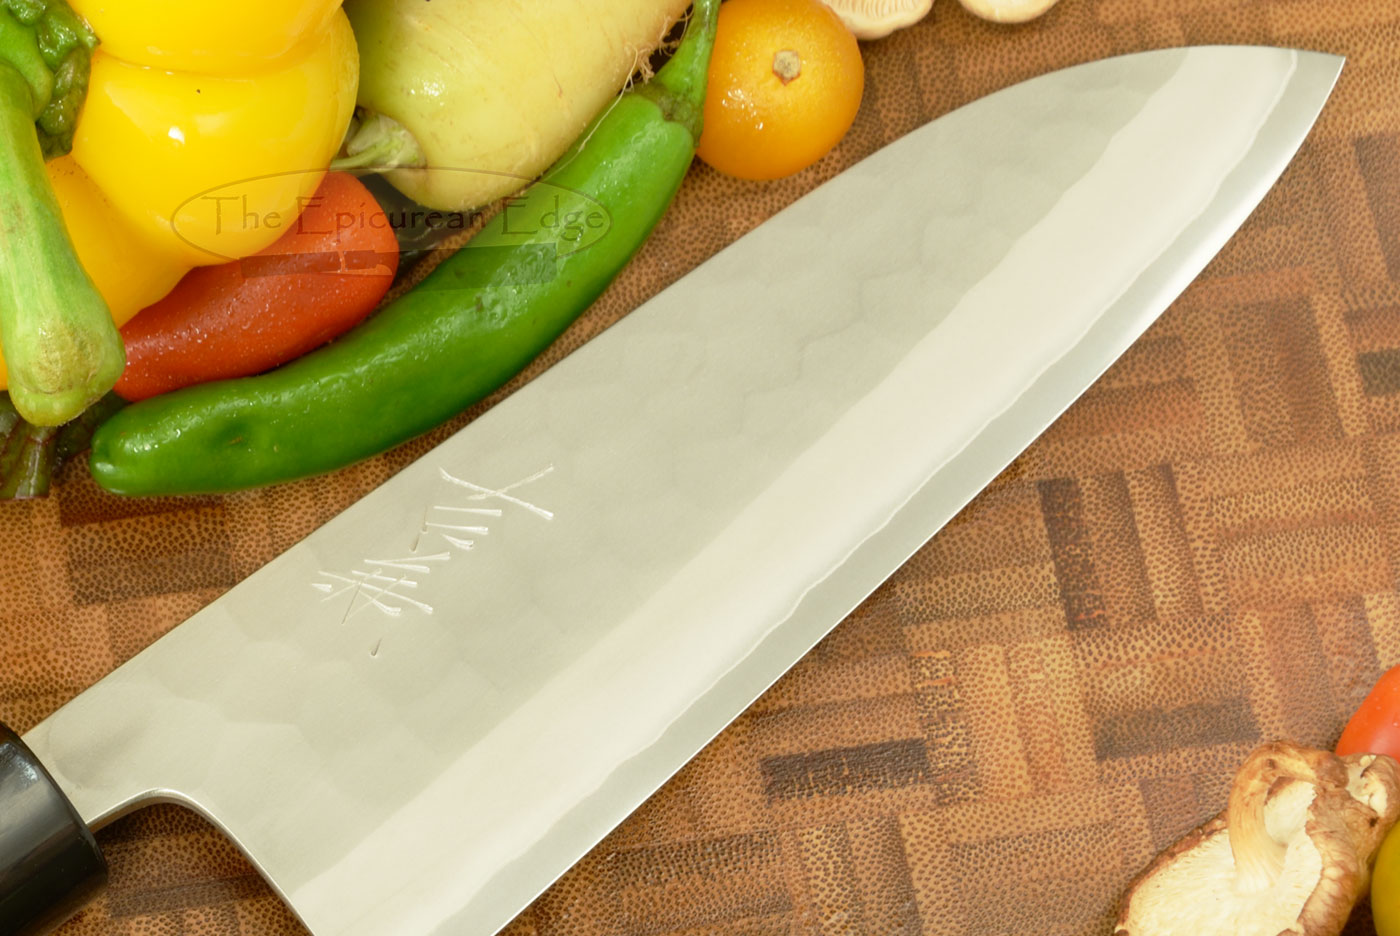 Hammer Finished Chef's Knife - Santoku, Traditional - 6 1/2 in. (165mm)